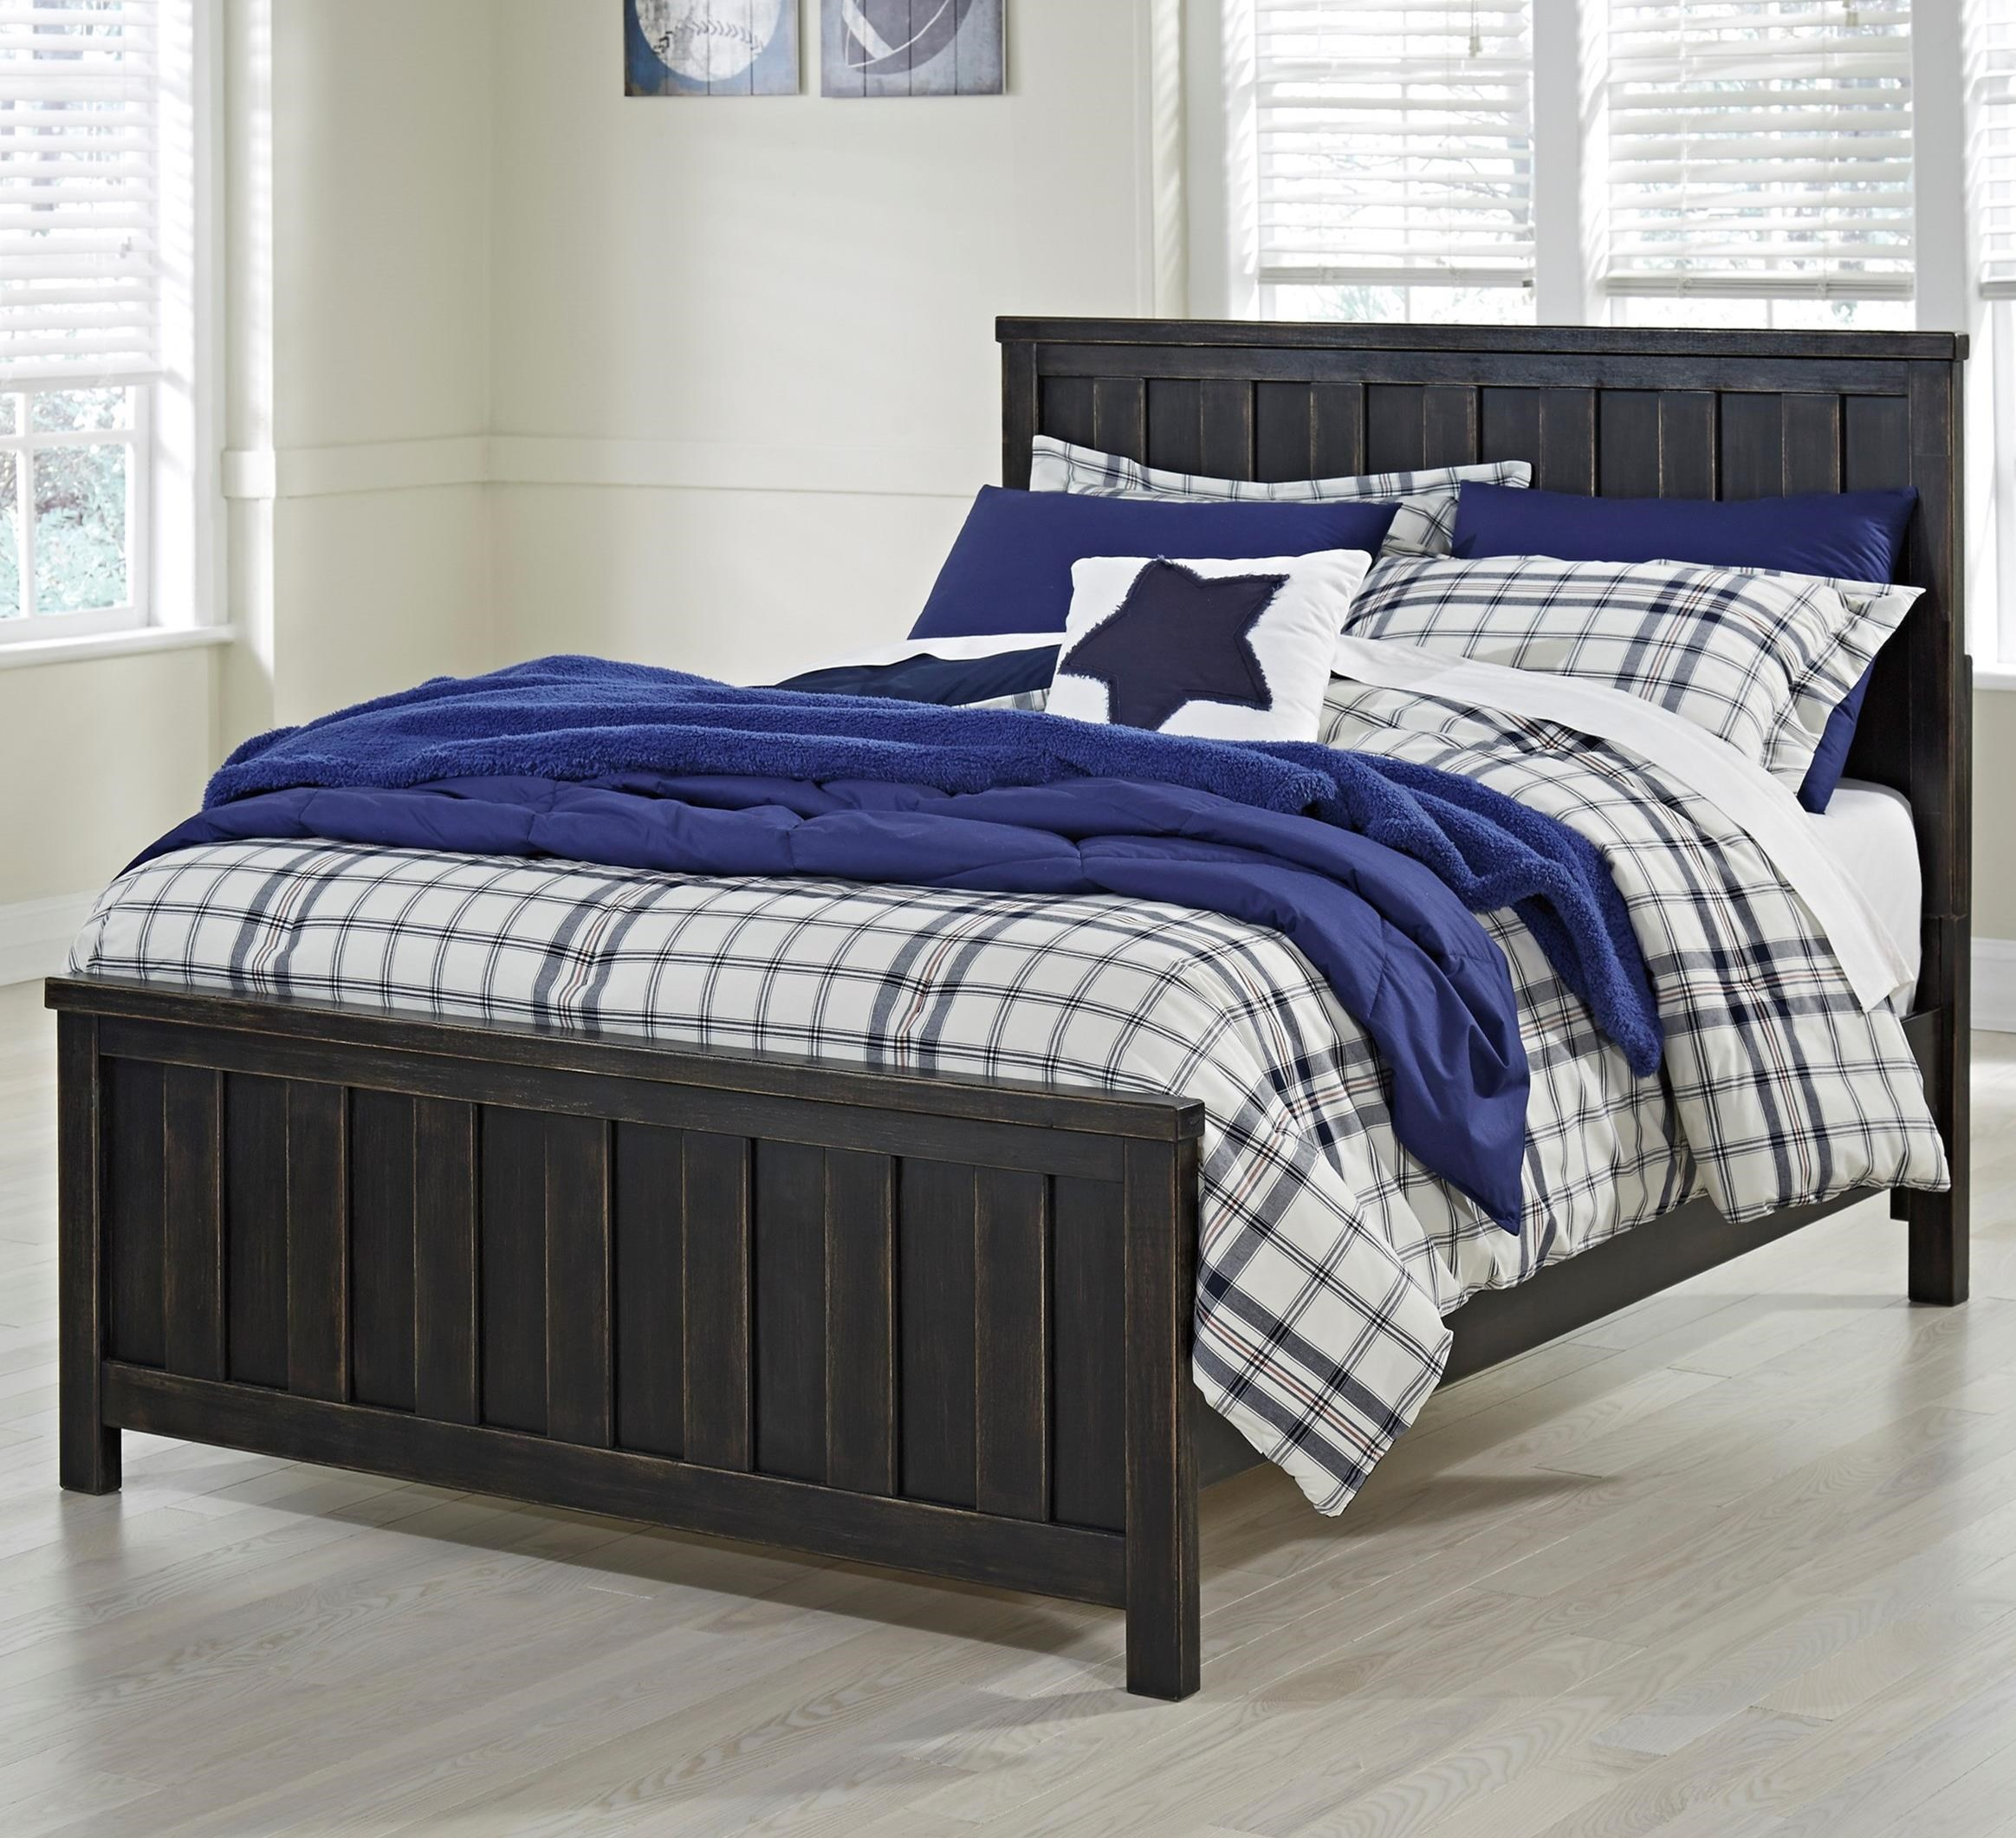 Signature design by ashley jaysom full panel bed in rub - Ashley furniture full bedroom sets ...